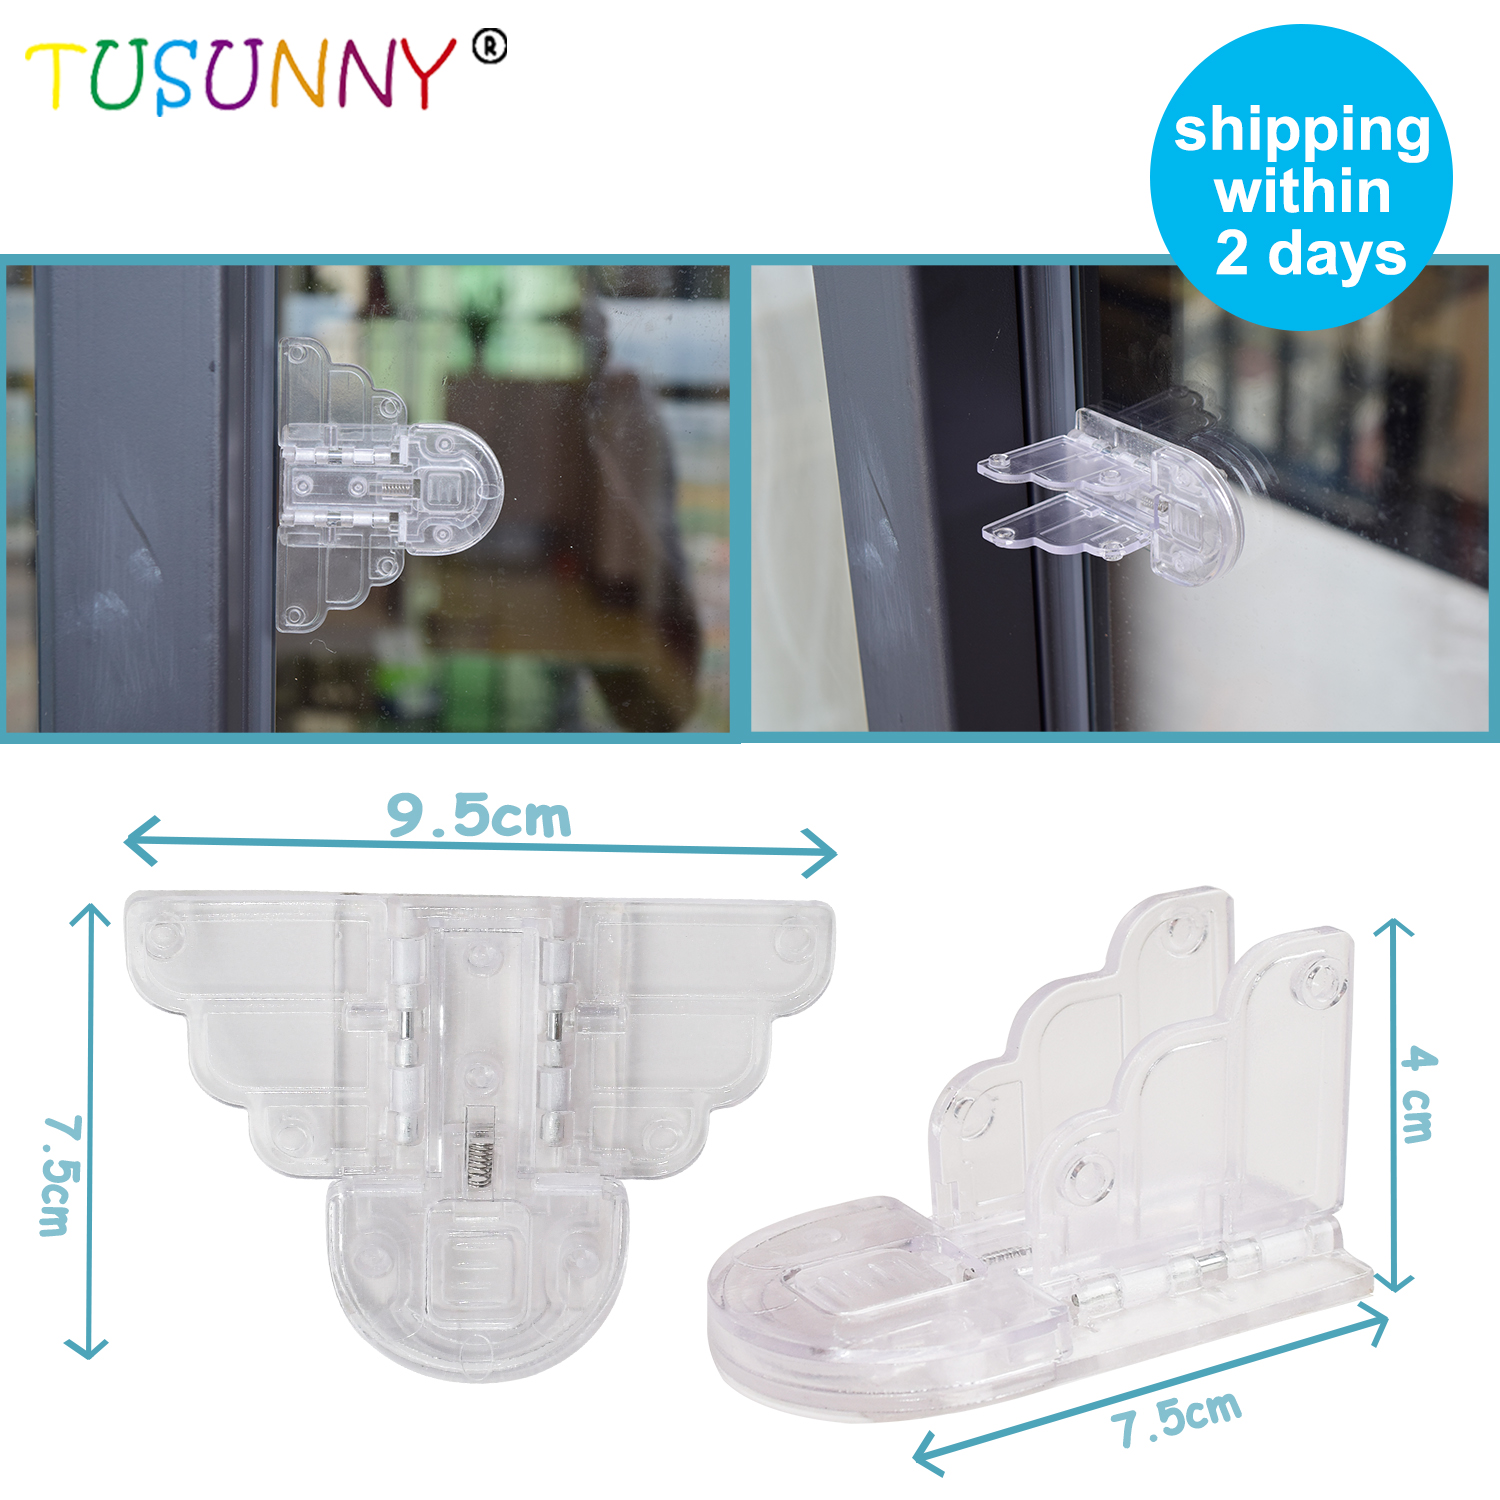 TUSUNNY 3pcs Baby Safety Lock For Sliding Door Window Protection From Children Baby Safe Sliding Window Stop Lock Window Locks